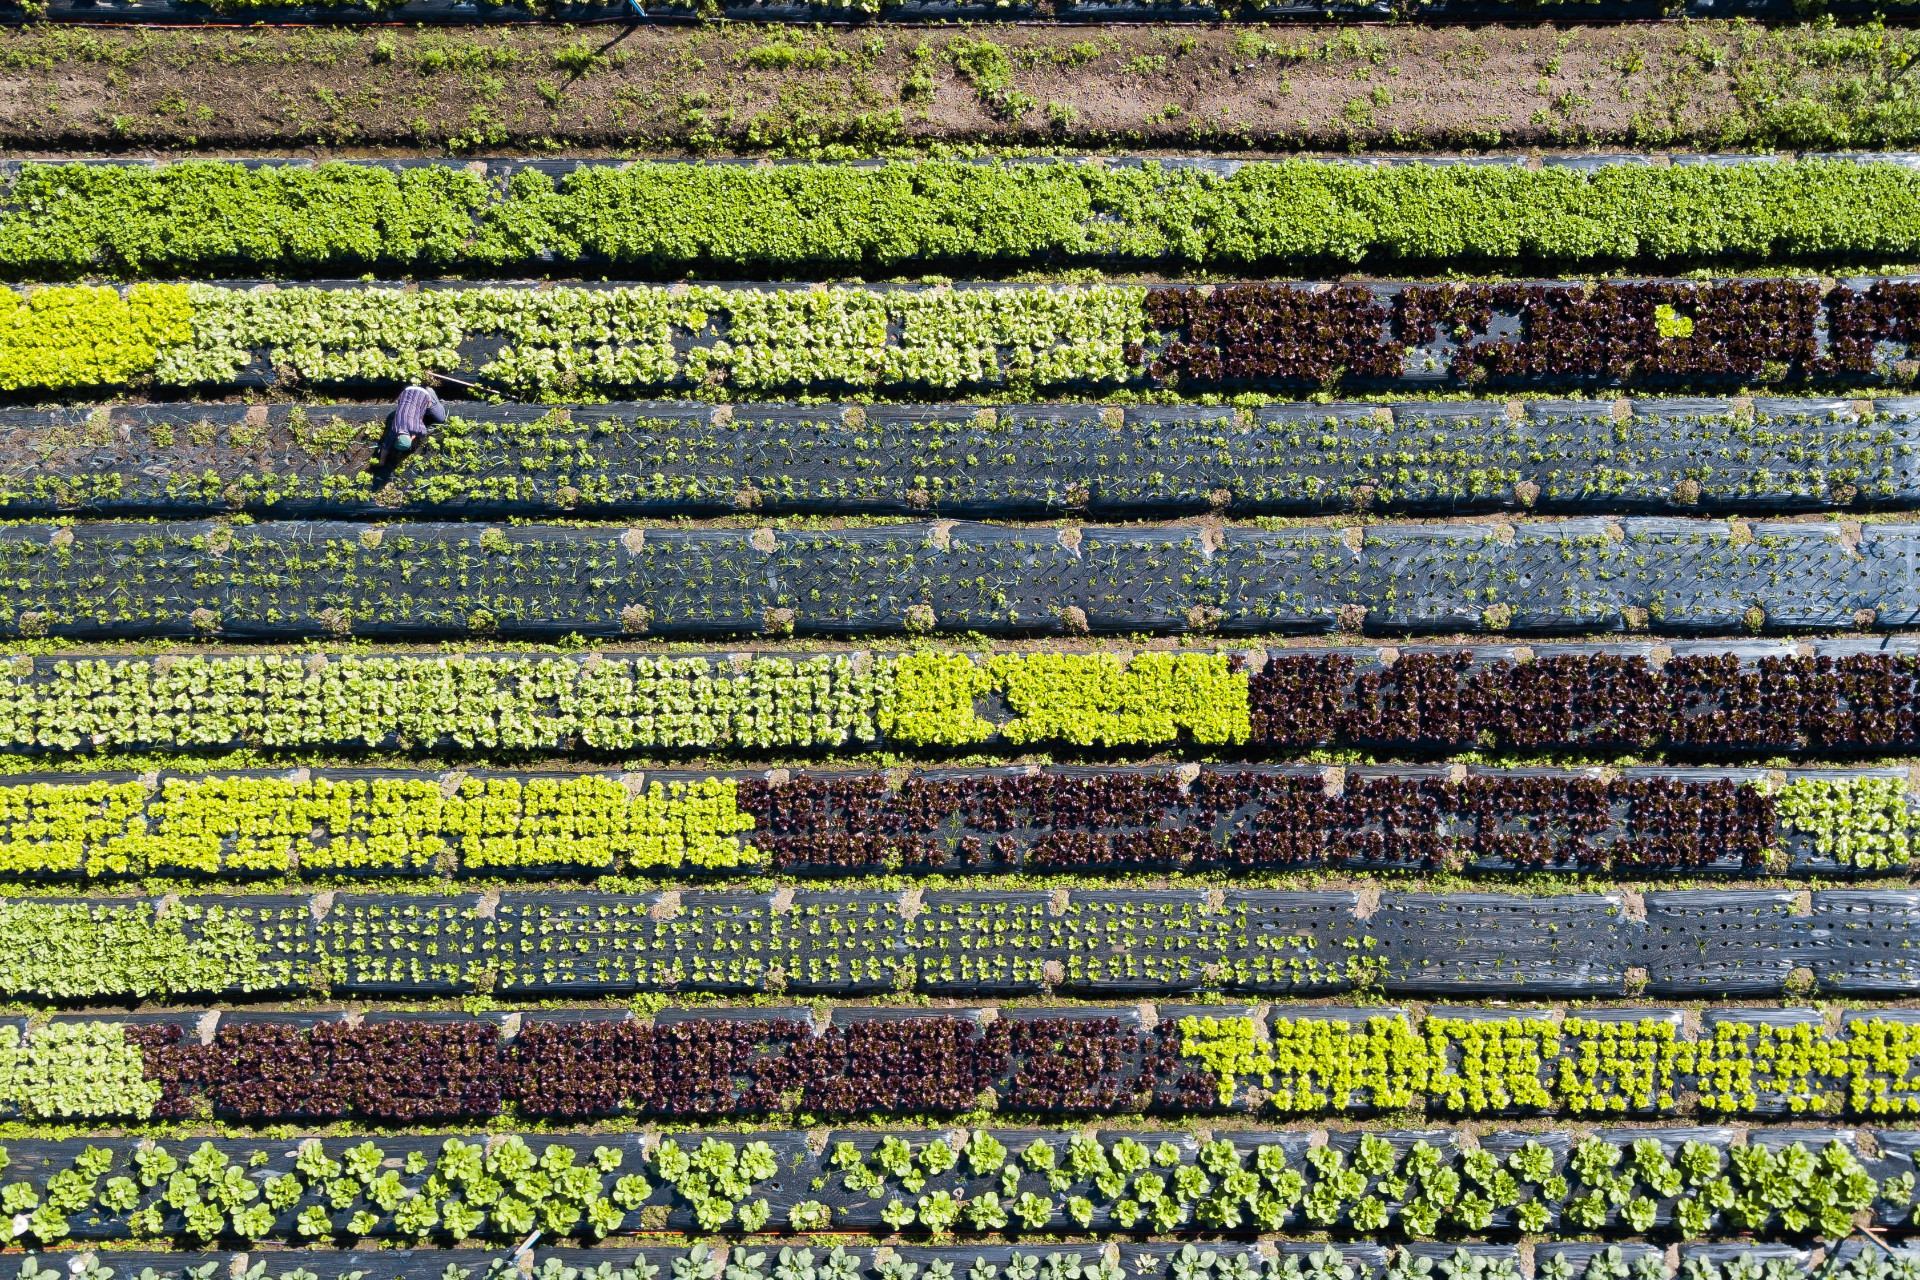 verhead view of a man tending to his vegetable farm